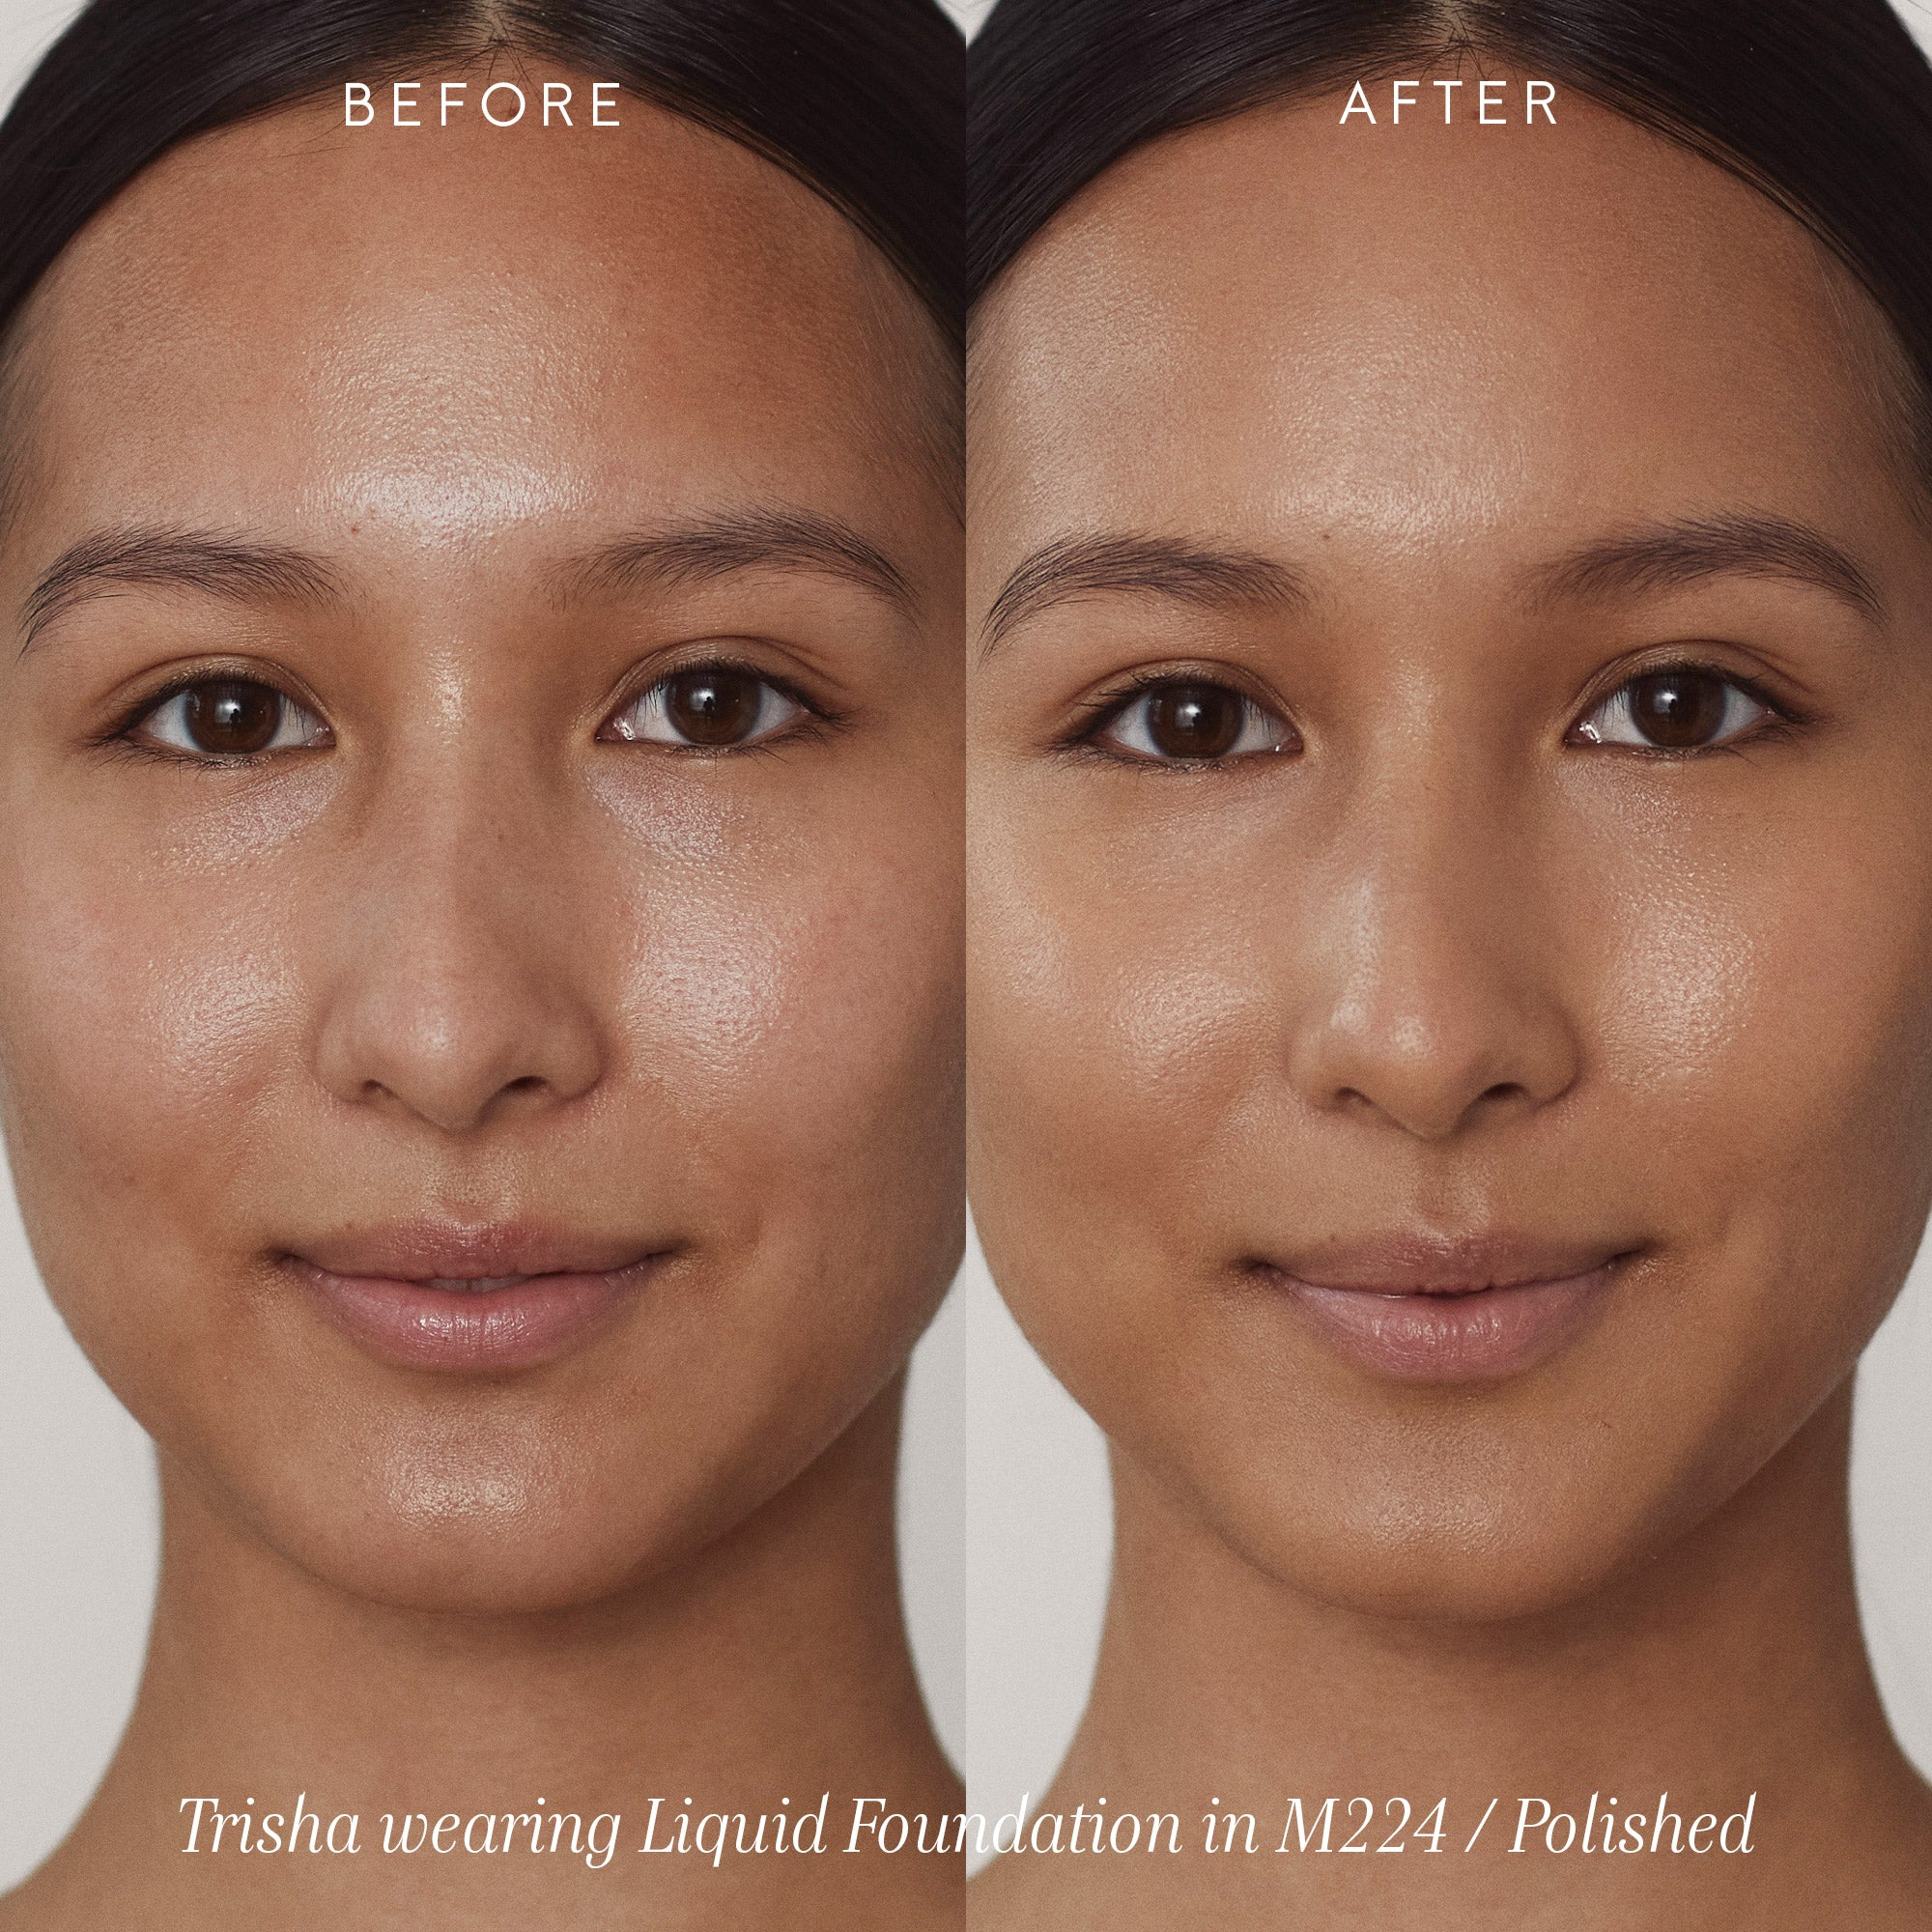 Kjaer-Weis-Invisible-Touch-Liquid-Foundation-Before-and-After-M224-Polished